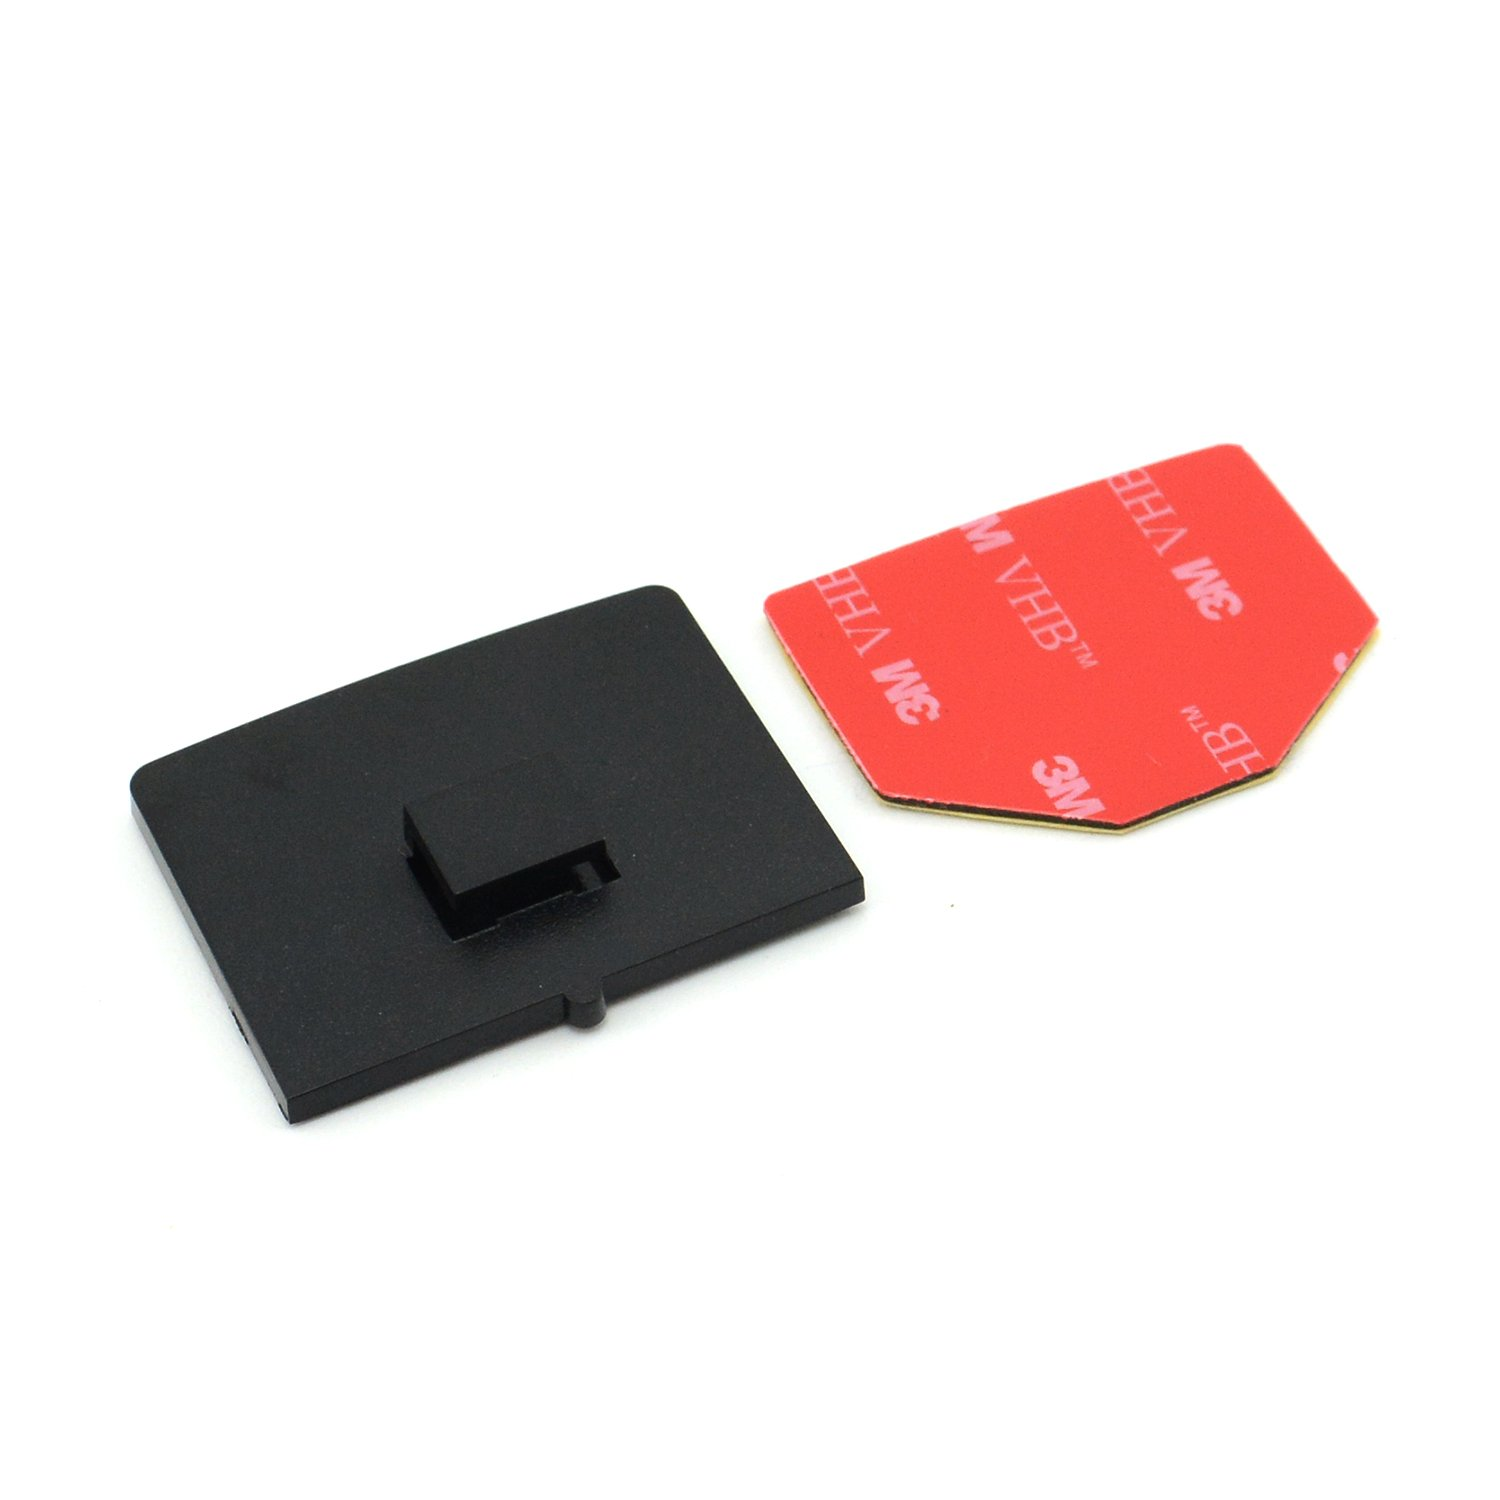 iSaddle 3M Adhesive Mount Holder/w Additonal 3M Adhesive Pad for in Dash Camera Rexing V1 V1P V1N A118 A118C A118-C B40